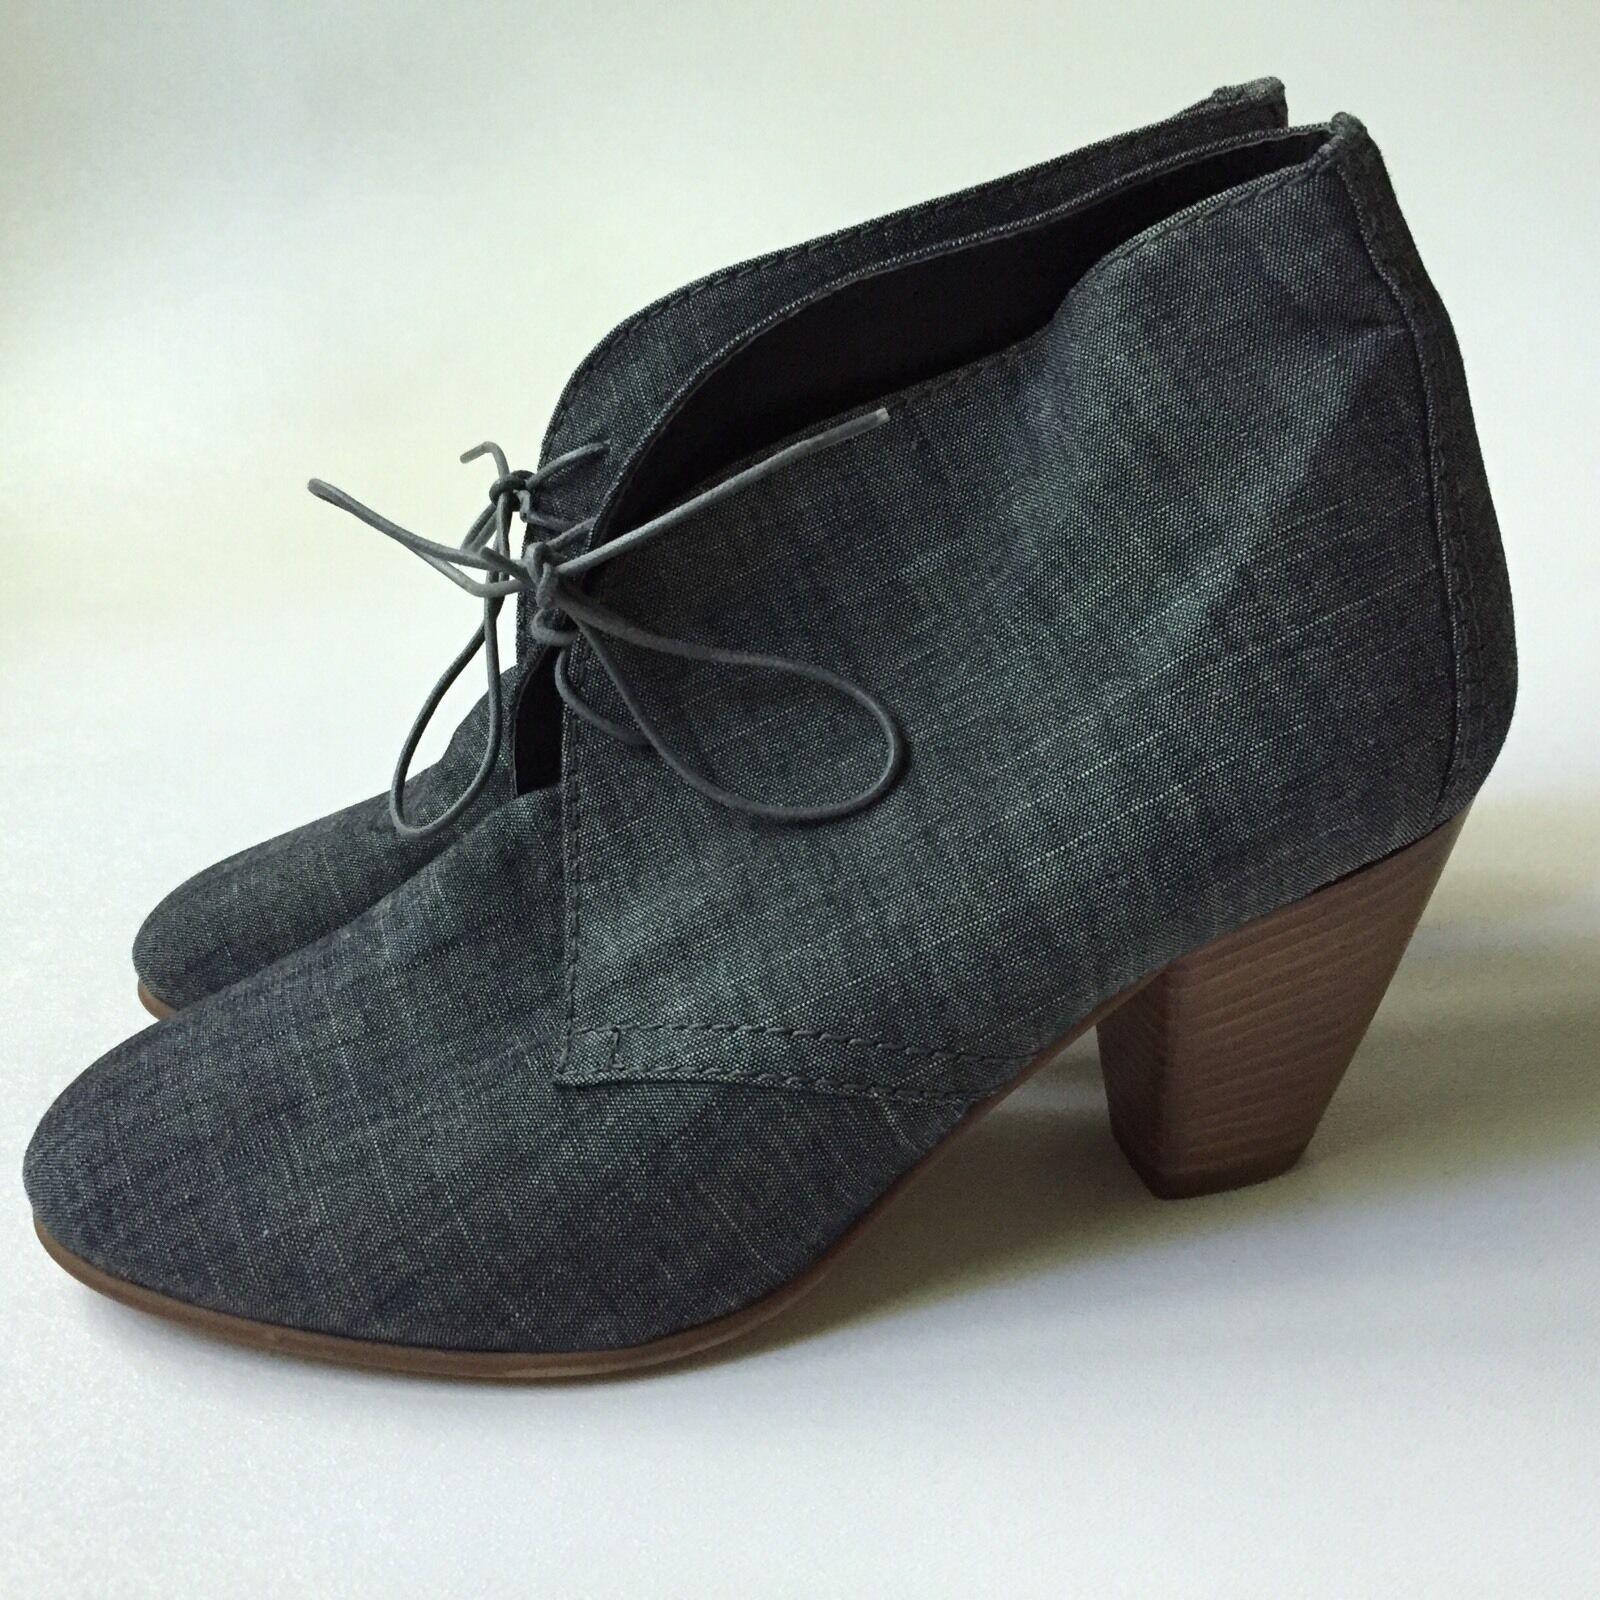 198 Madewell the denim sandstorm boot 45592 Größe 9 SOLD OUT EVERYWHERE